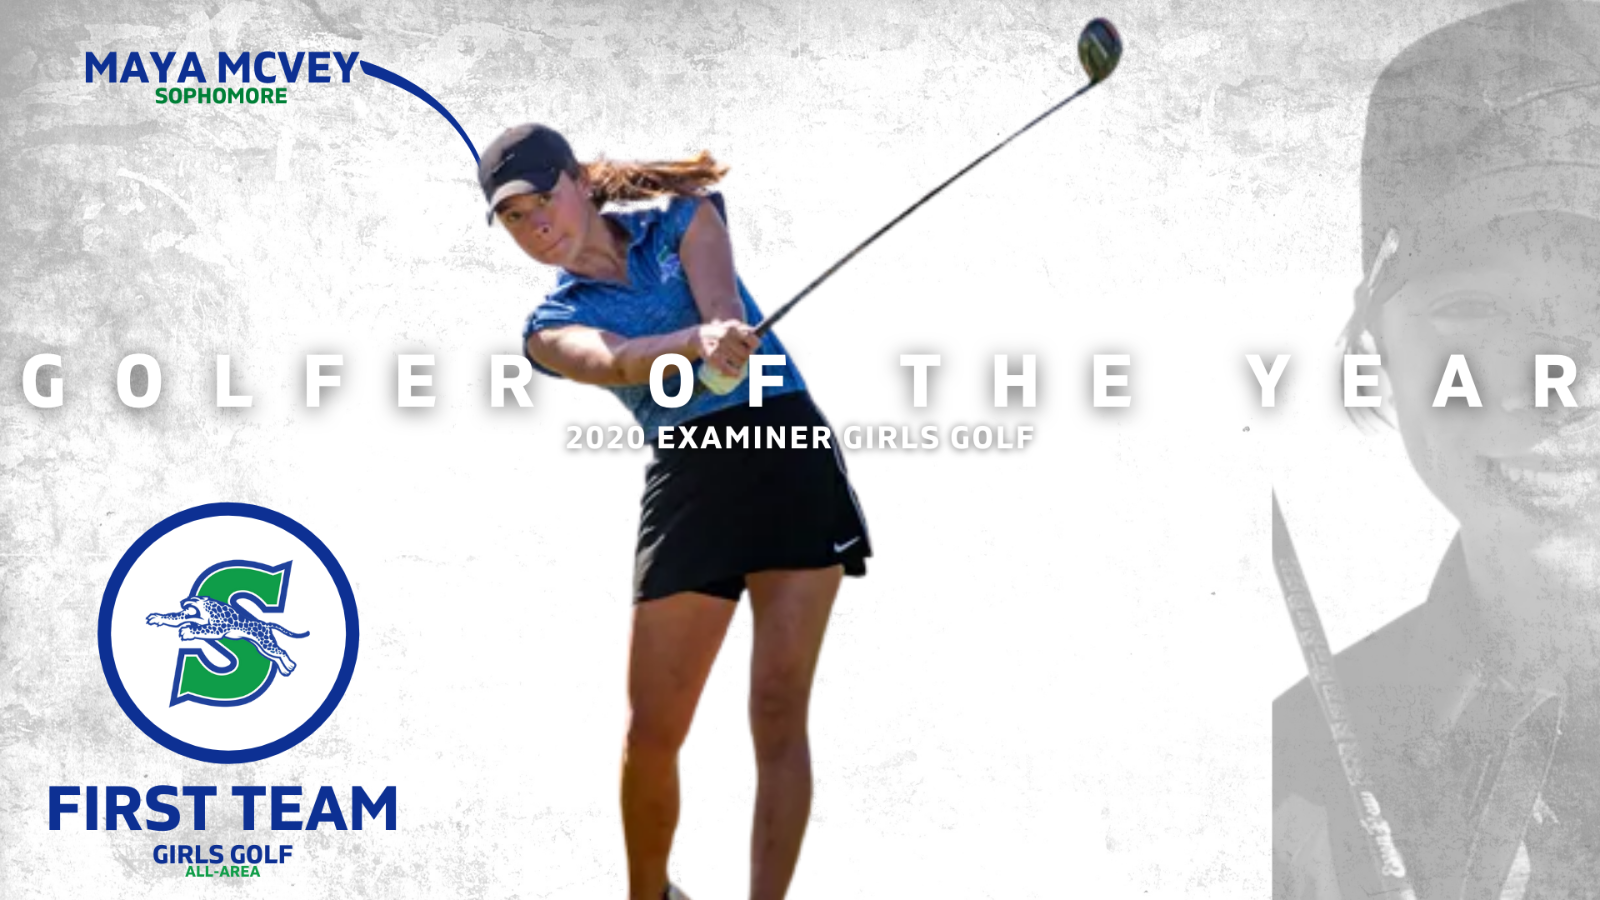 Golfer of the Year